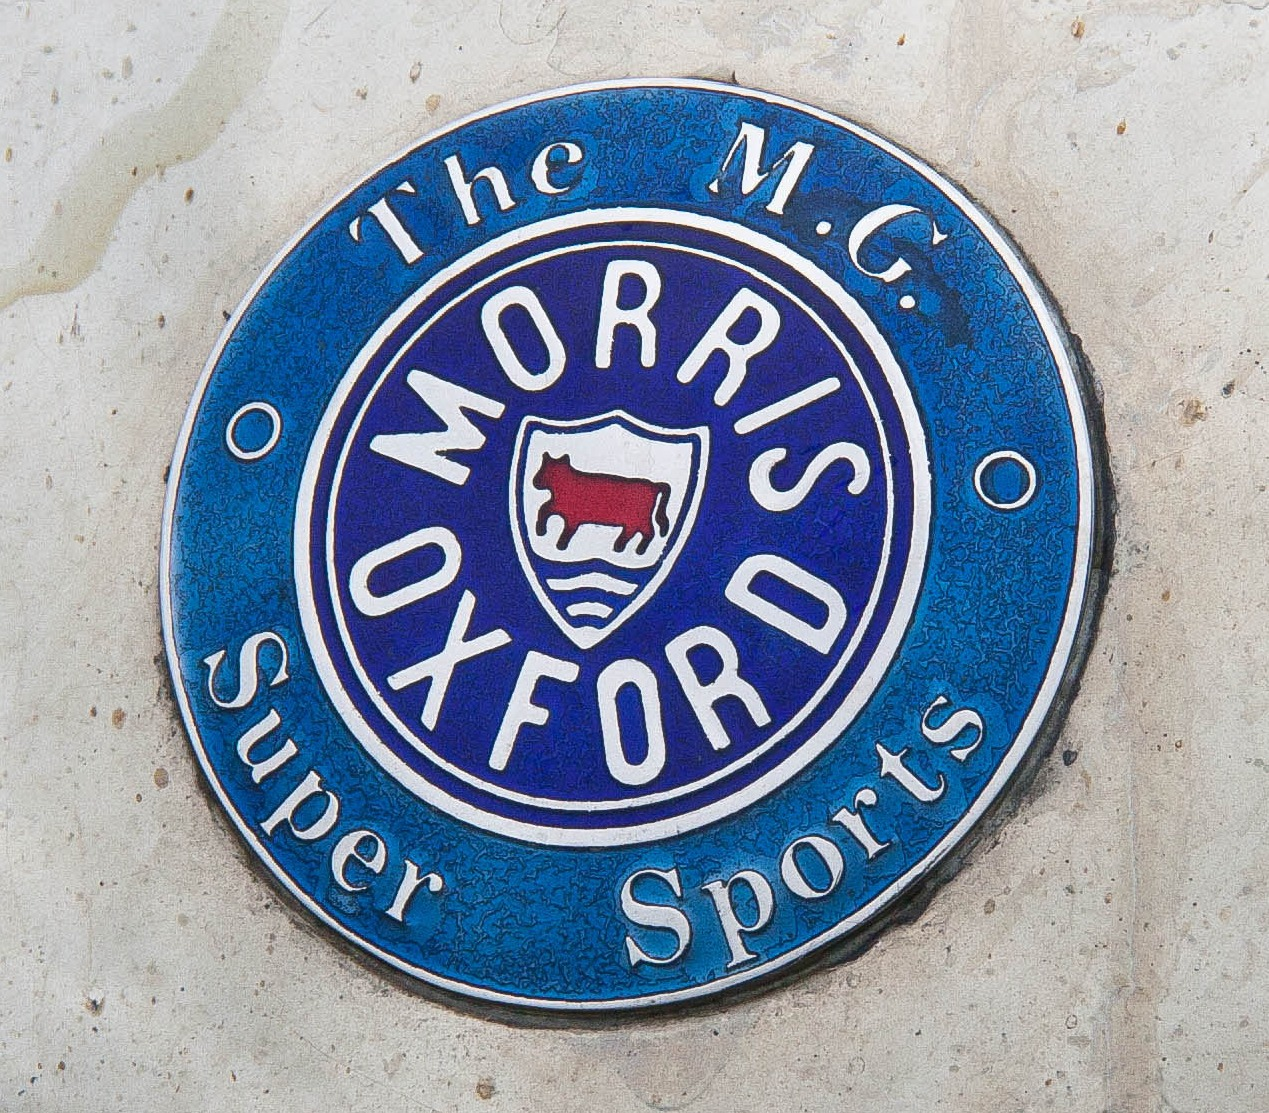 Original Morris Garages MG logo